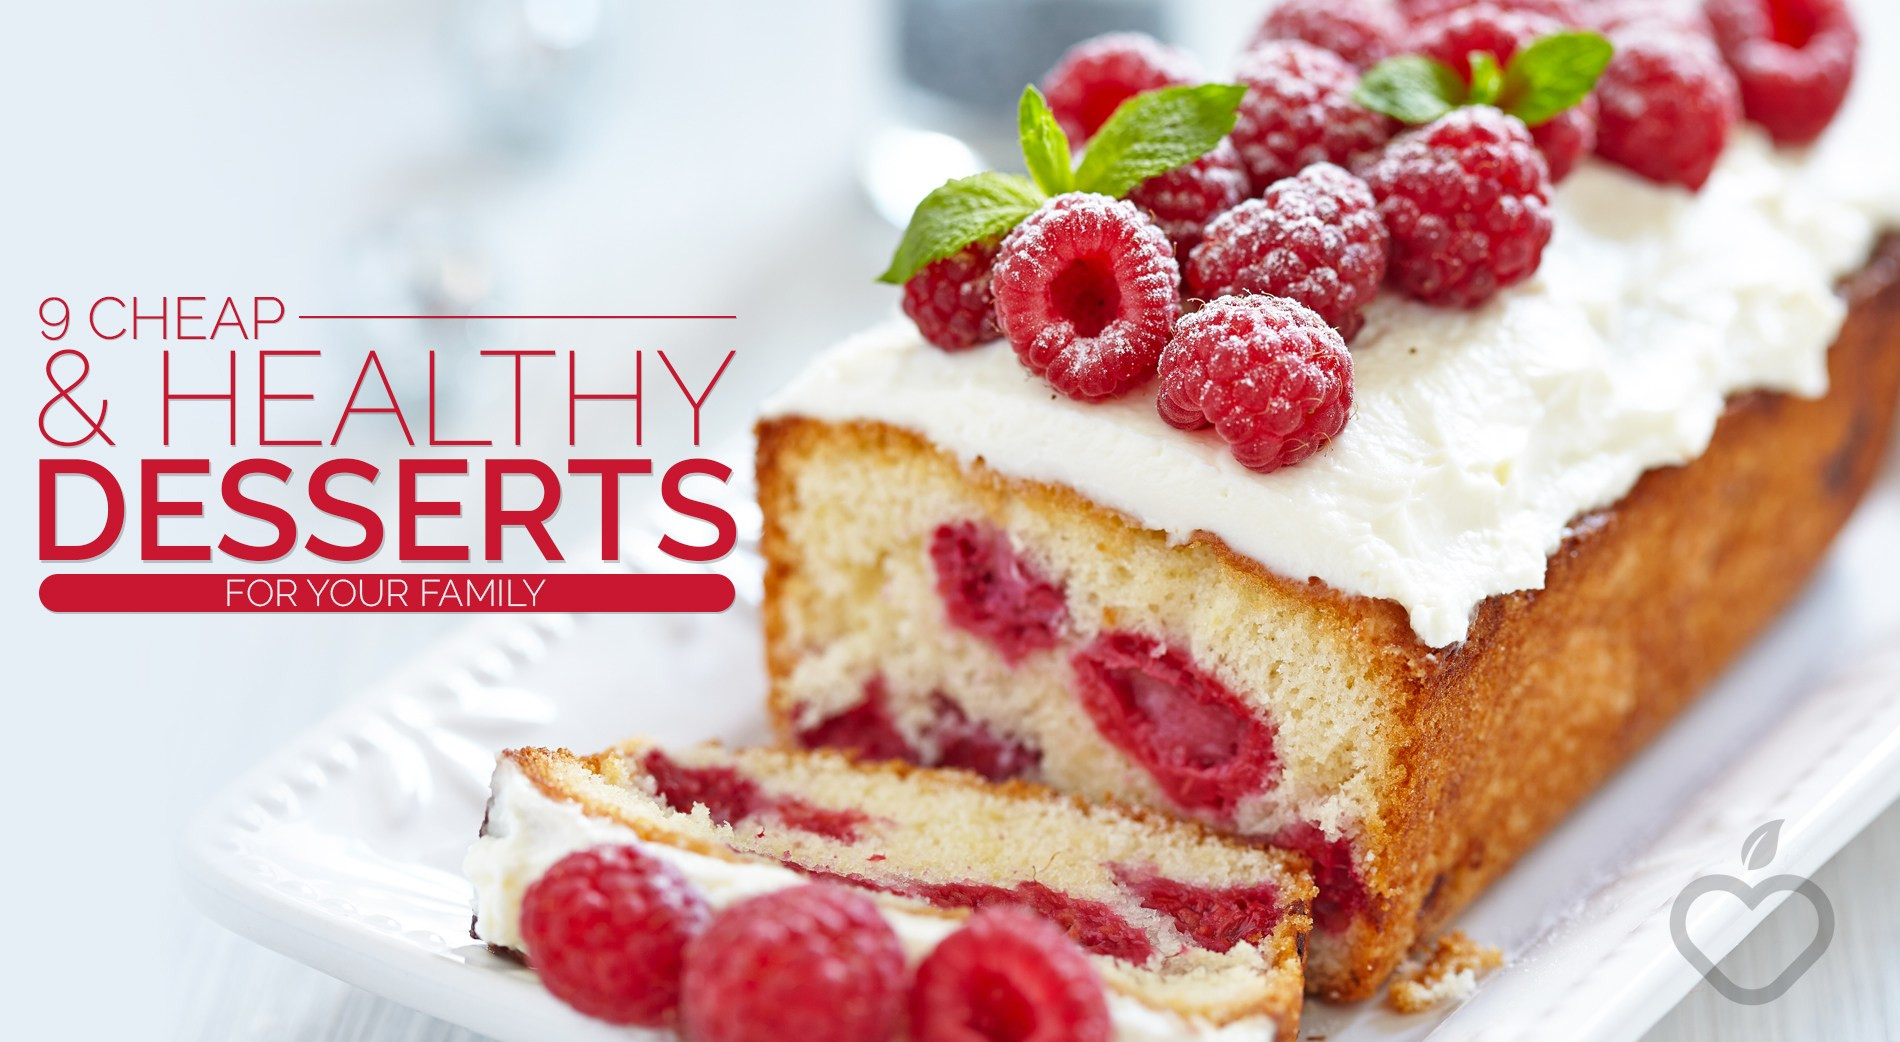 Cheap Healthy Desserts  9 Cheap And Healthy Desserts For Your Family ⋆ New York